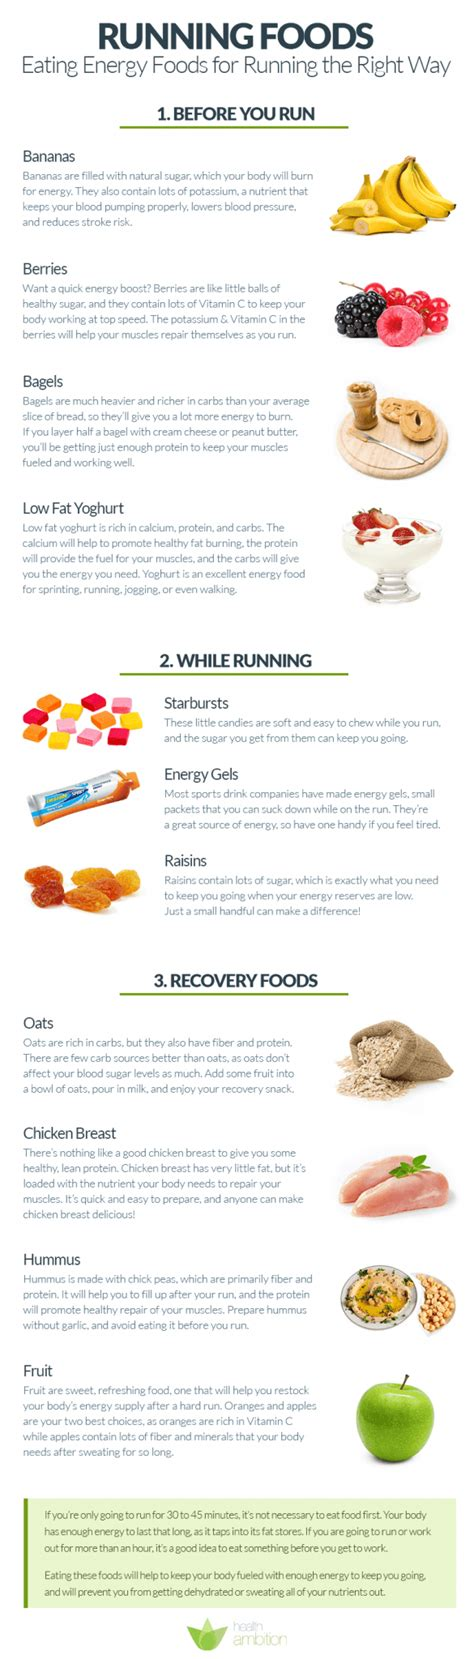 running foods energy foods for running the right way health ambition